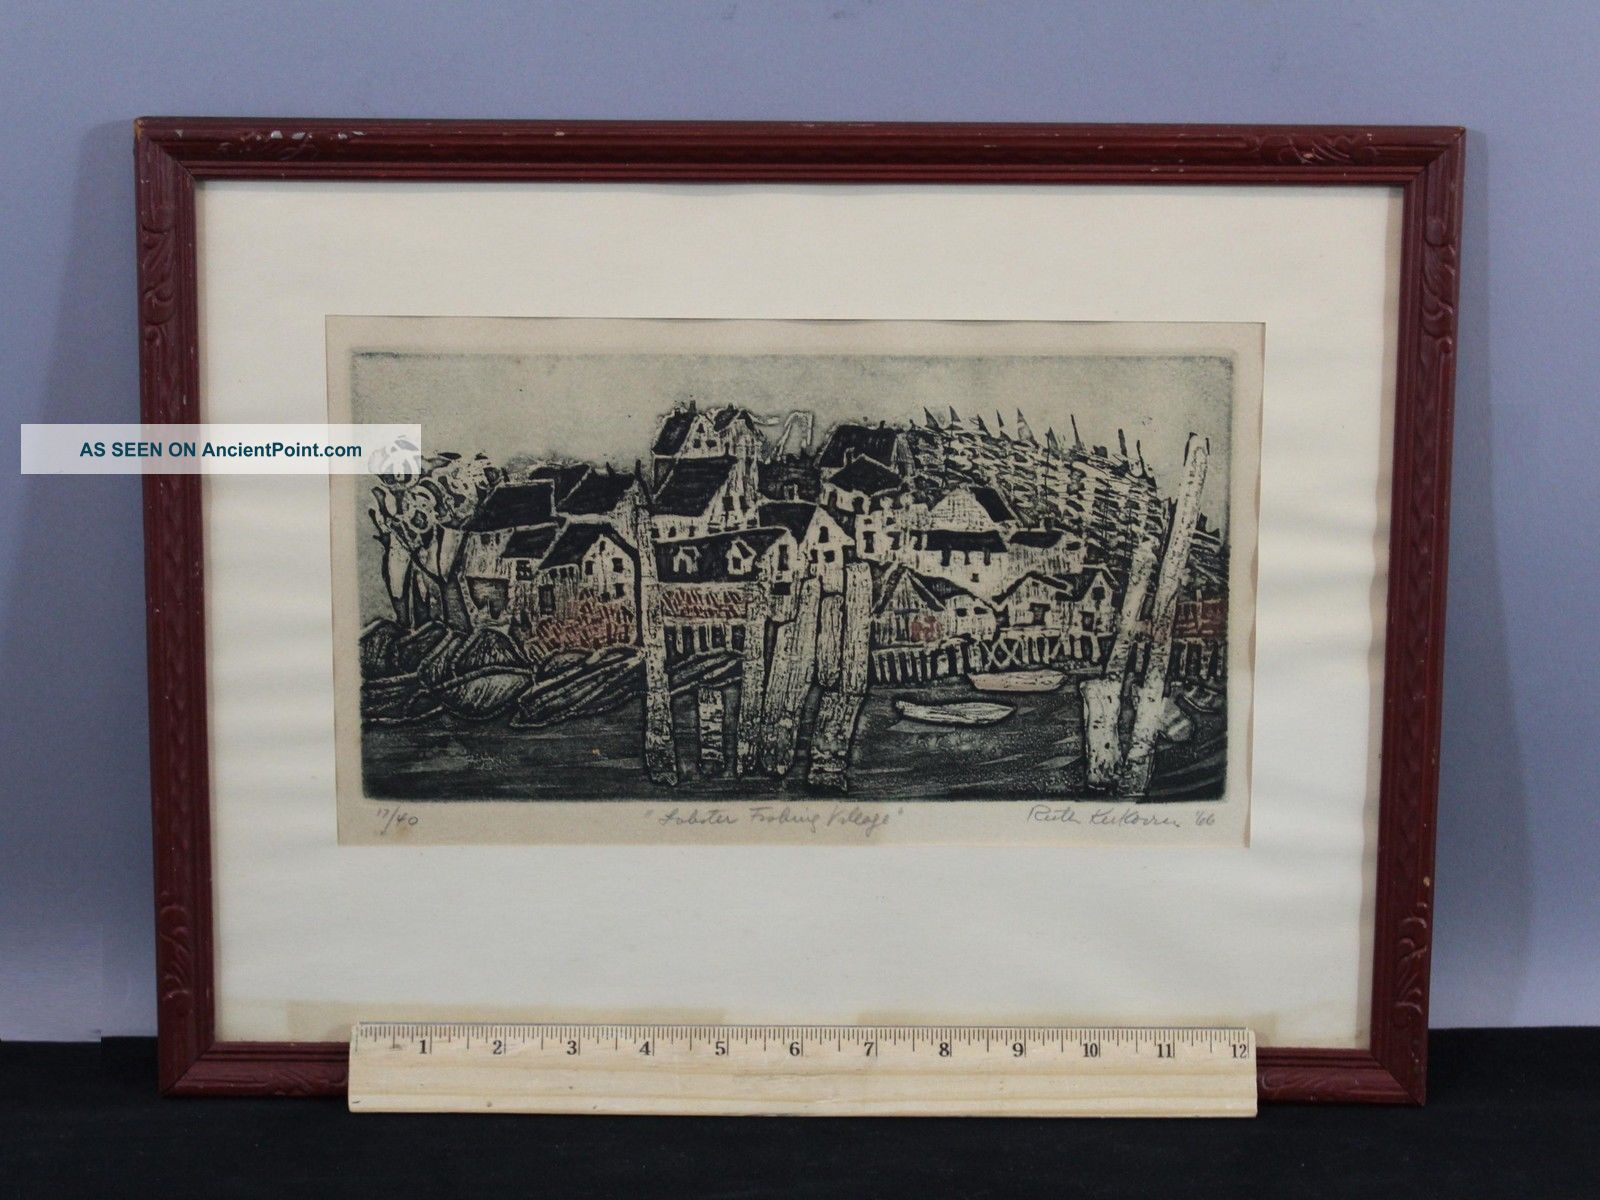 Vintage 1966 Limted Edition Ruth Kerkovius Lobster Fishing Town Etching Print Other Maritime Antiques photo